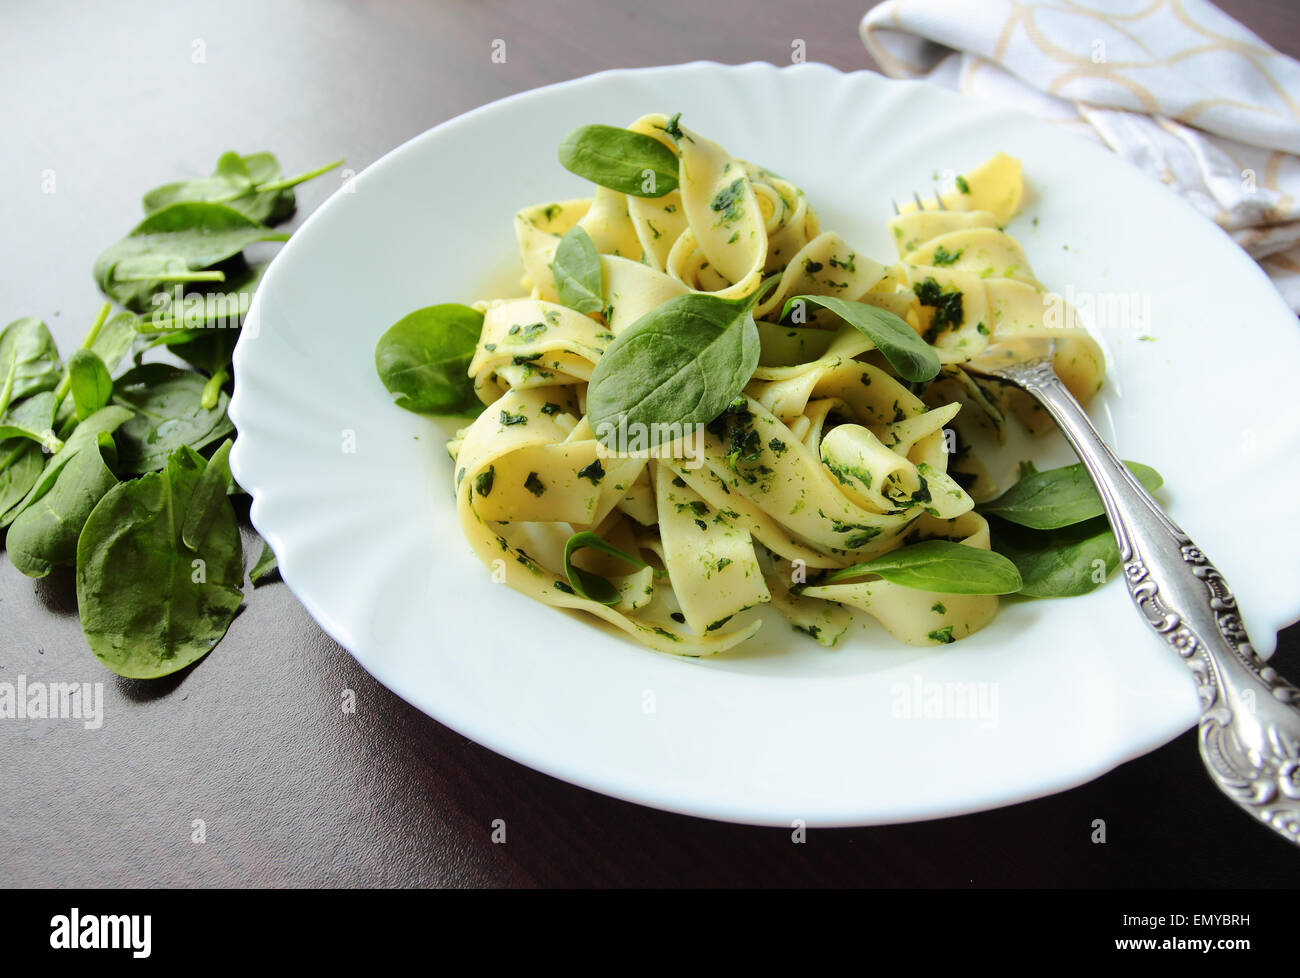 Pasta pappardelle with spinach leafs on white plate - Stock Image